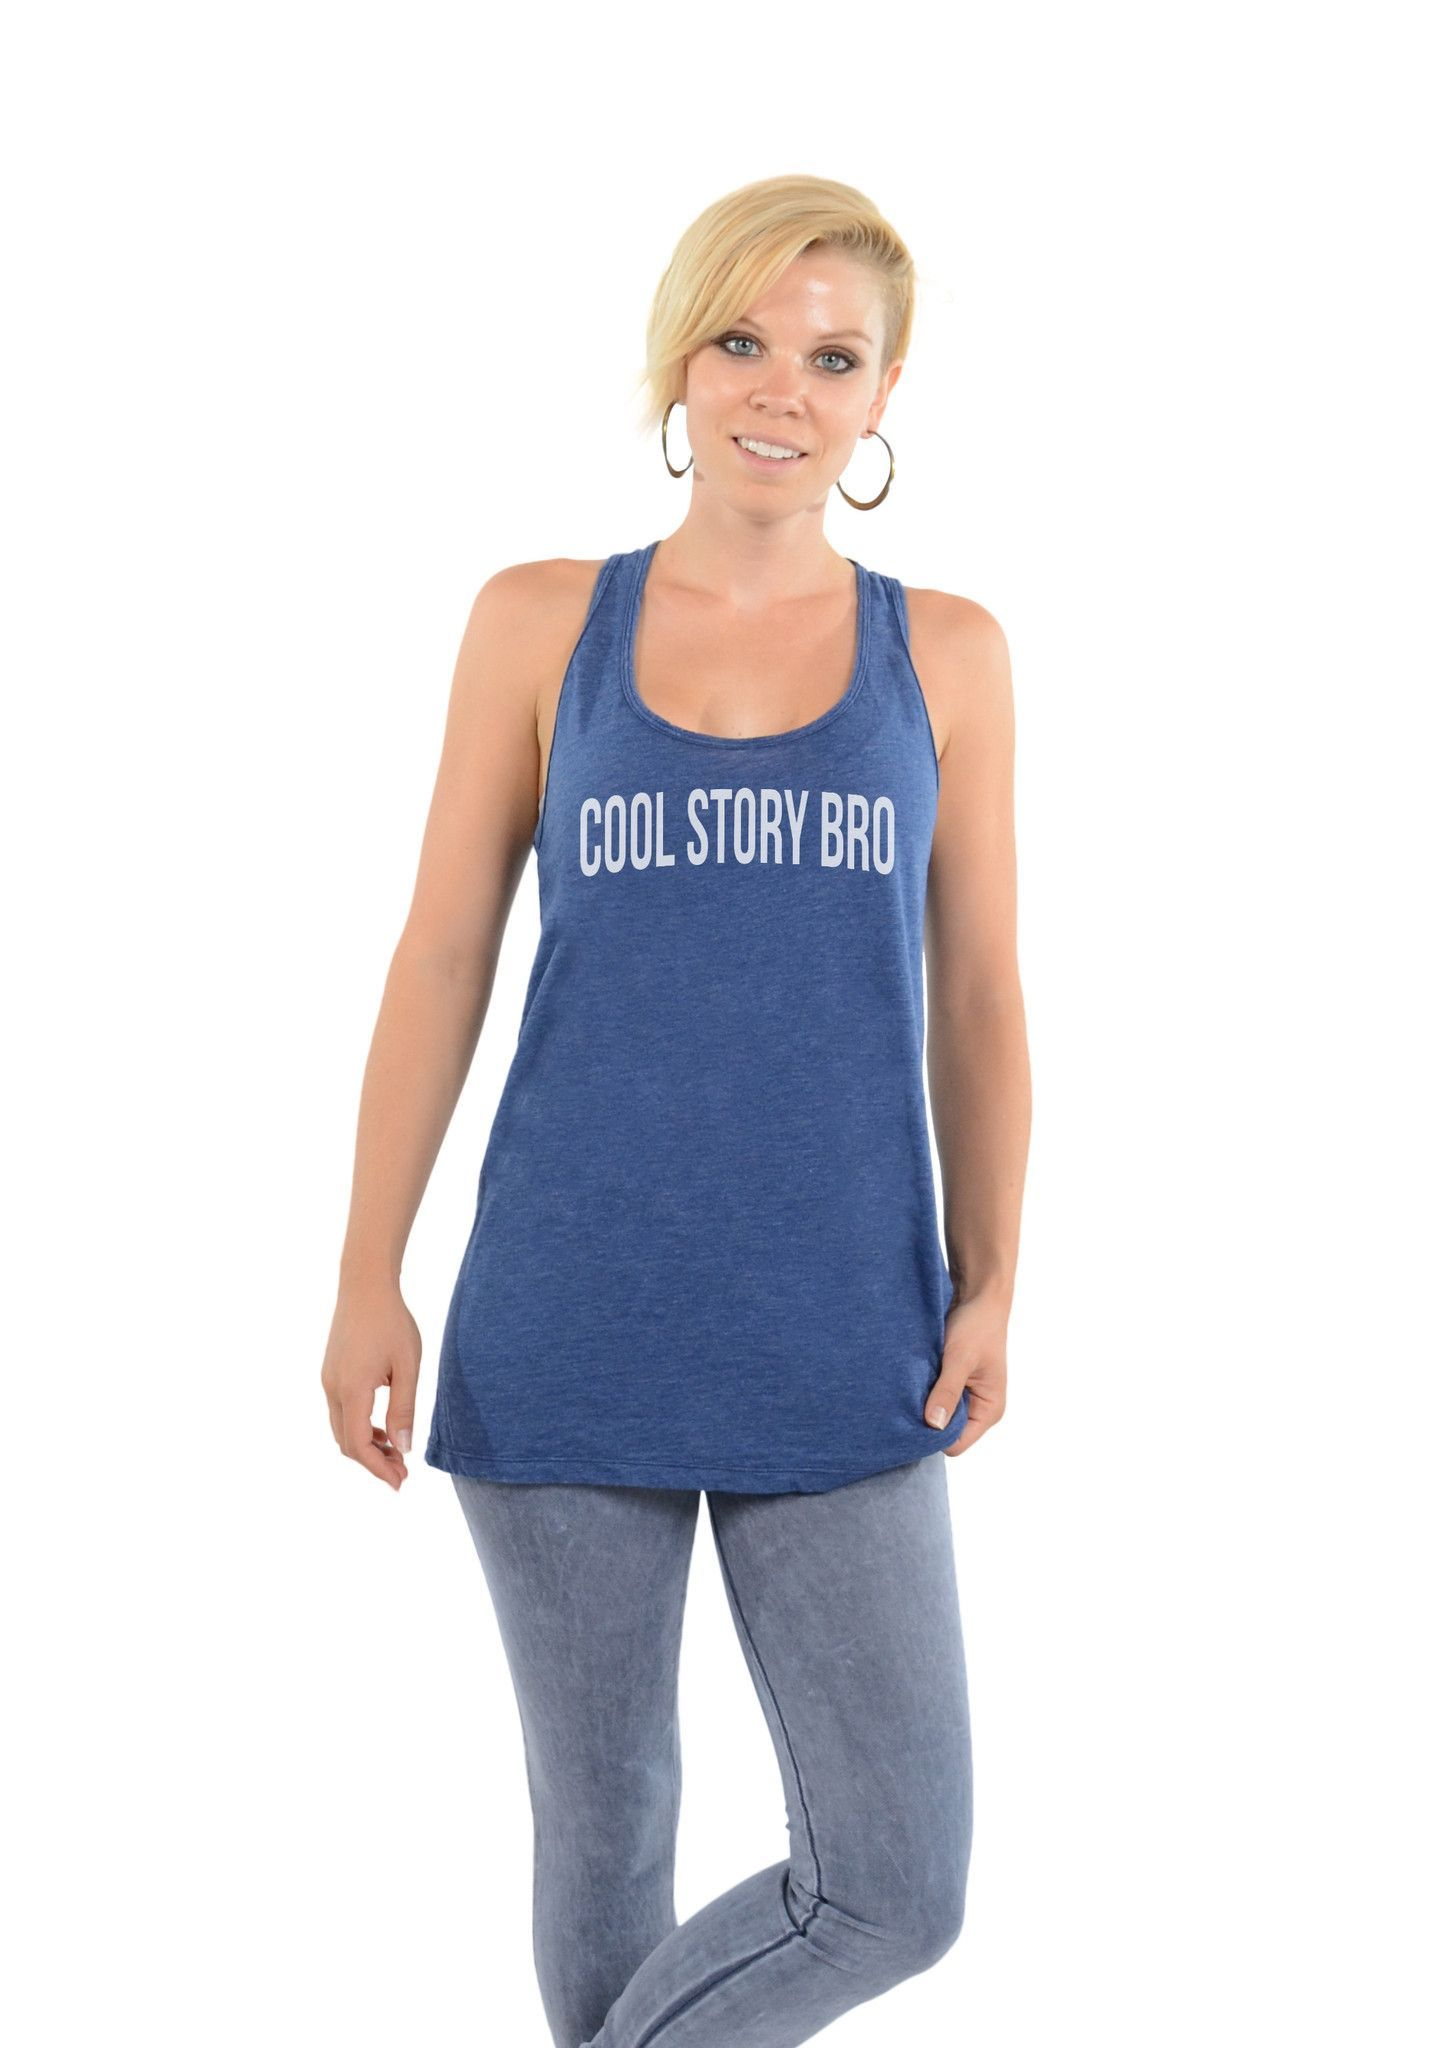 1774c10b4547b Cool Story Bro - You re about as interesting as a wet carrot -- Oversized Racerback  Tank Cobalt  coolstorybro  coolstory  sassy  printedtees  graphictees